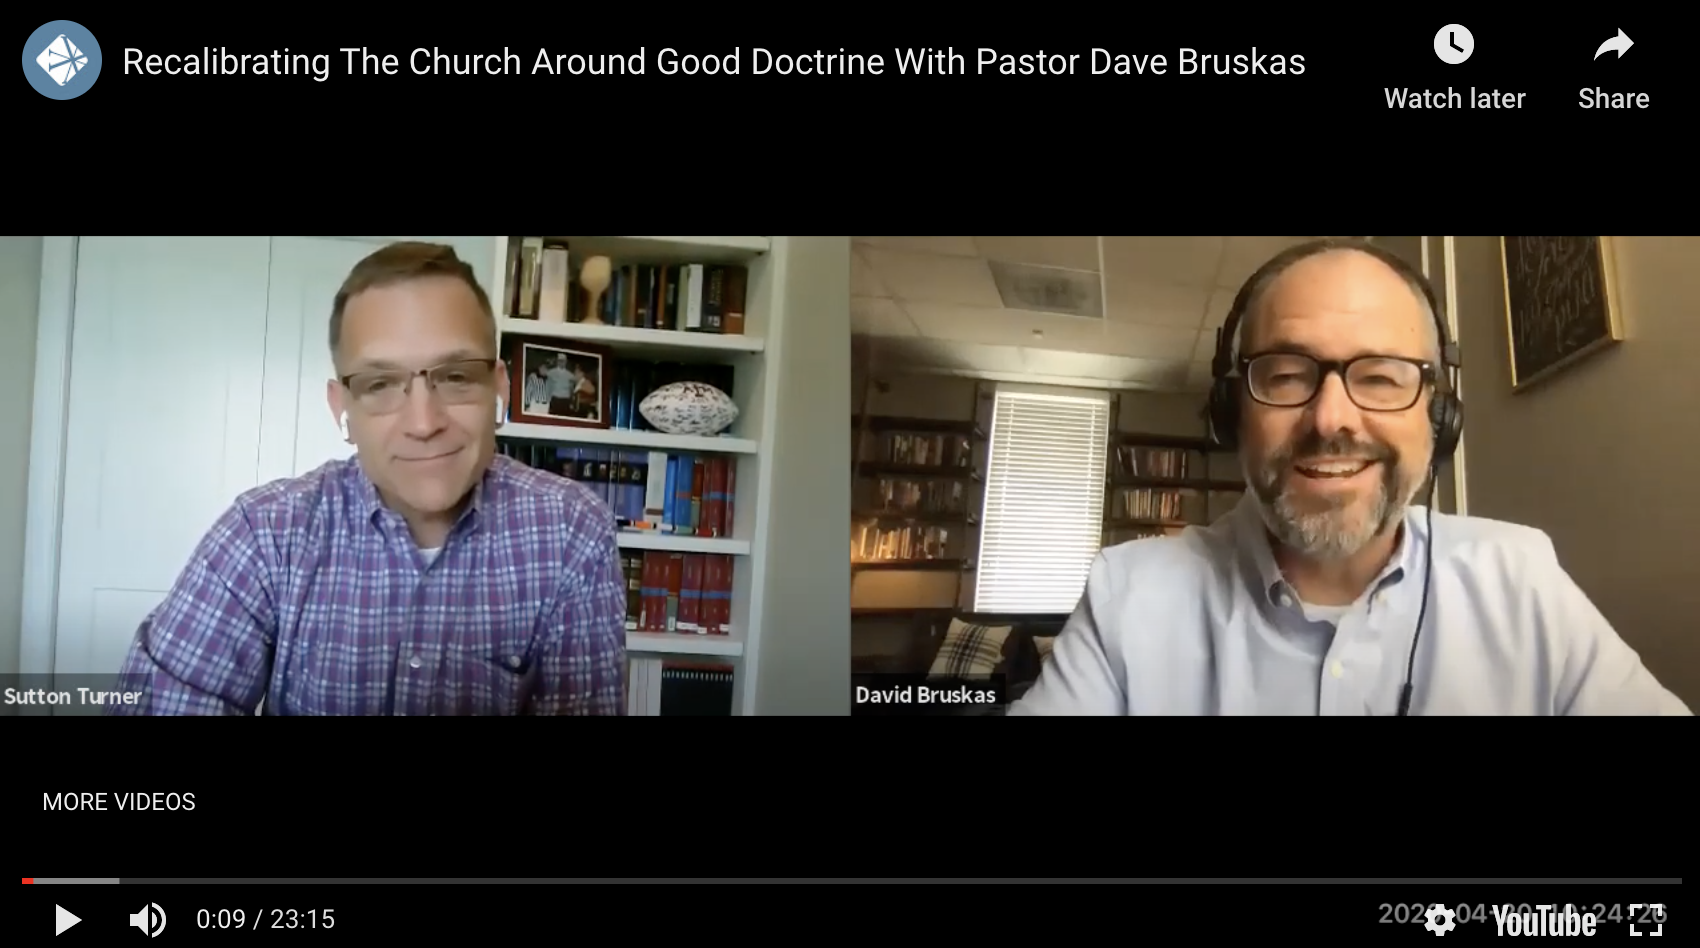 Recalibrating The Church Around Love With Pastor Dave Bruskas